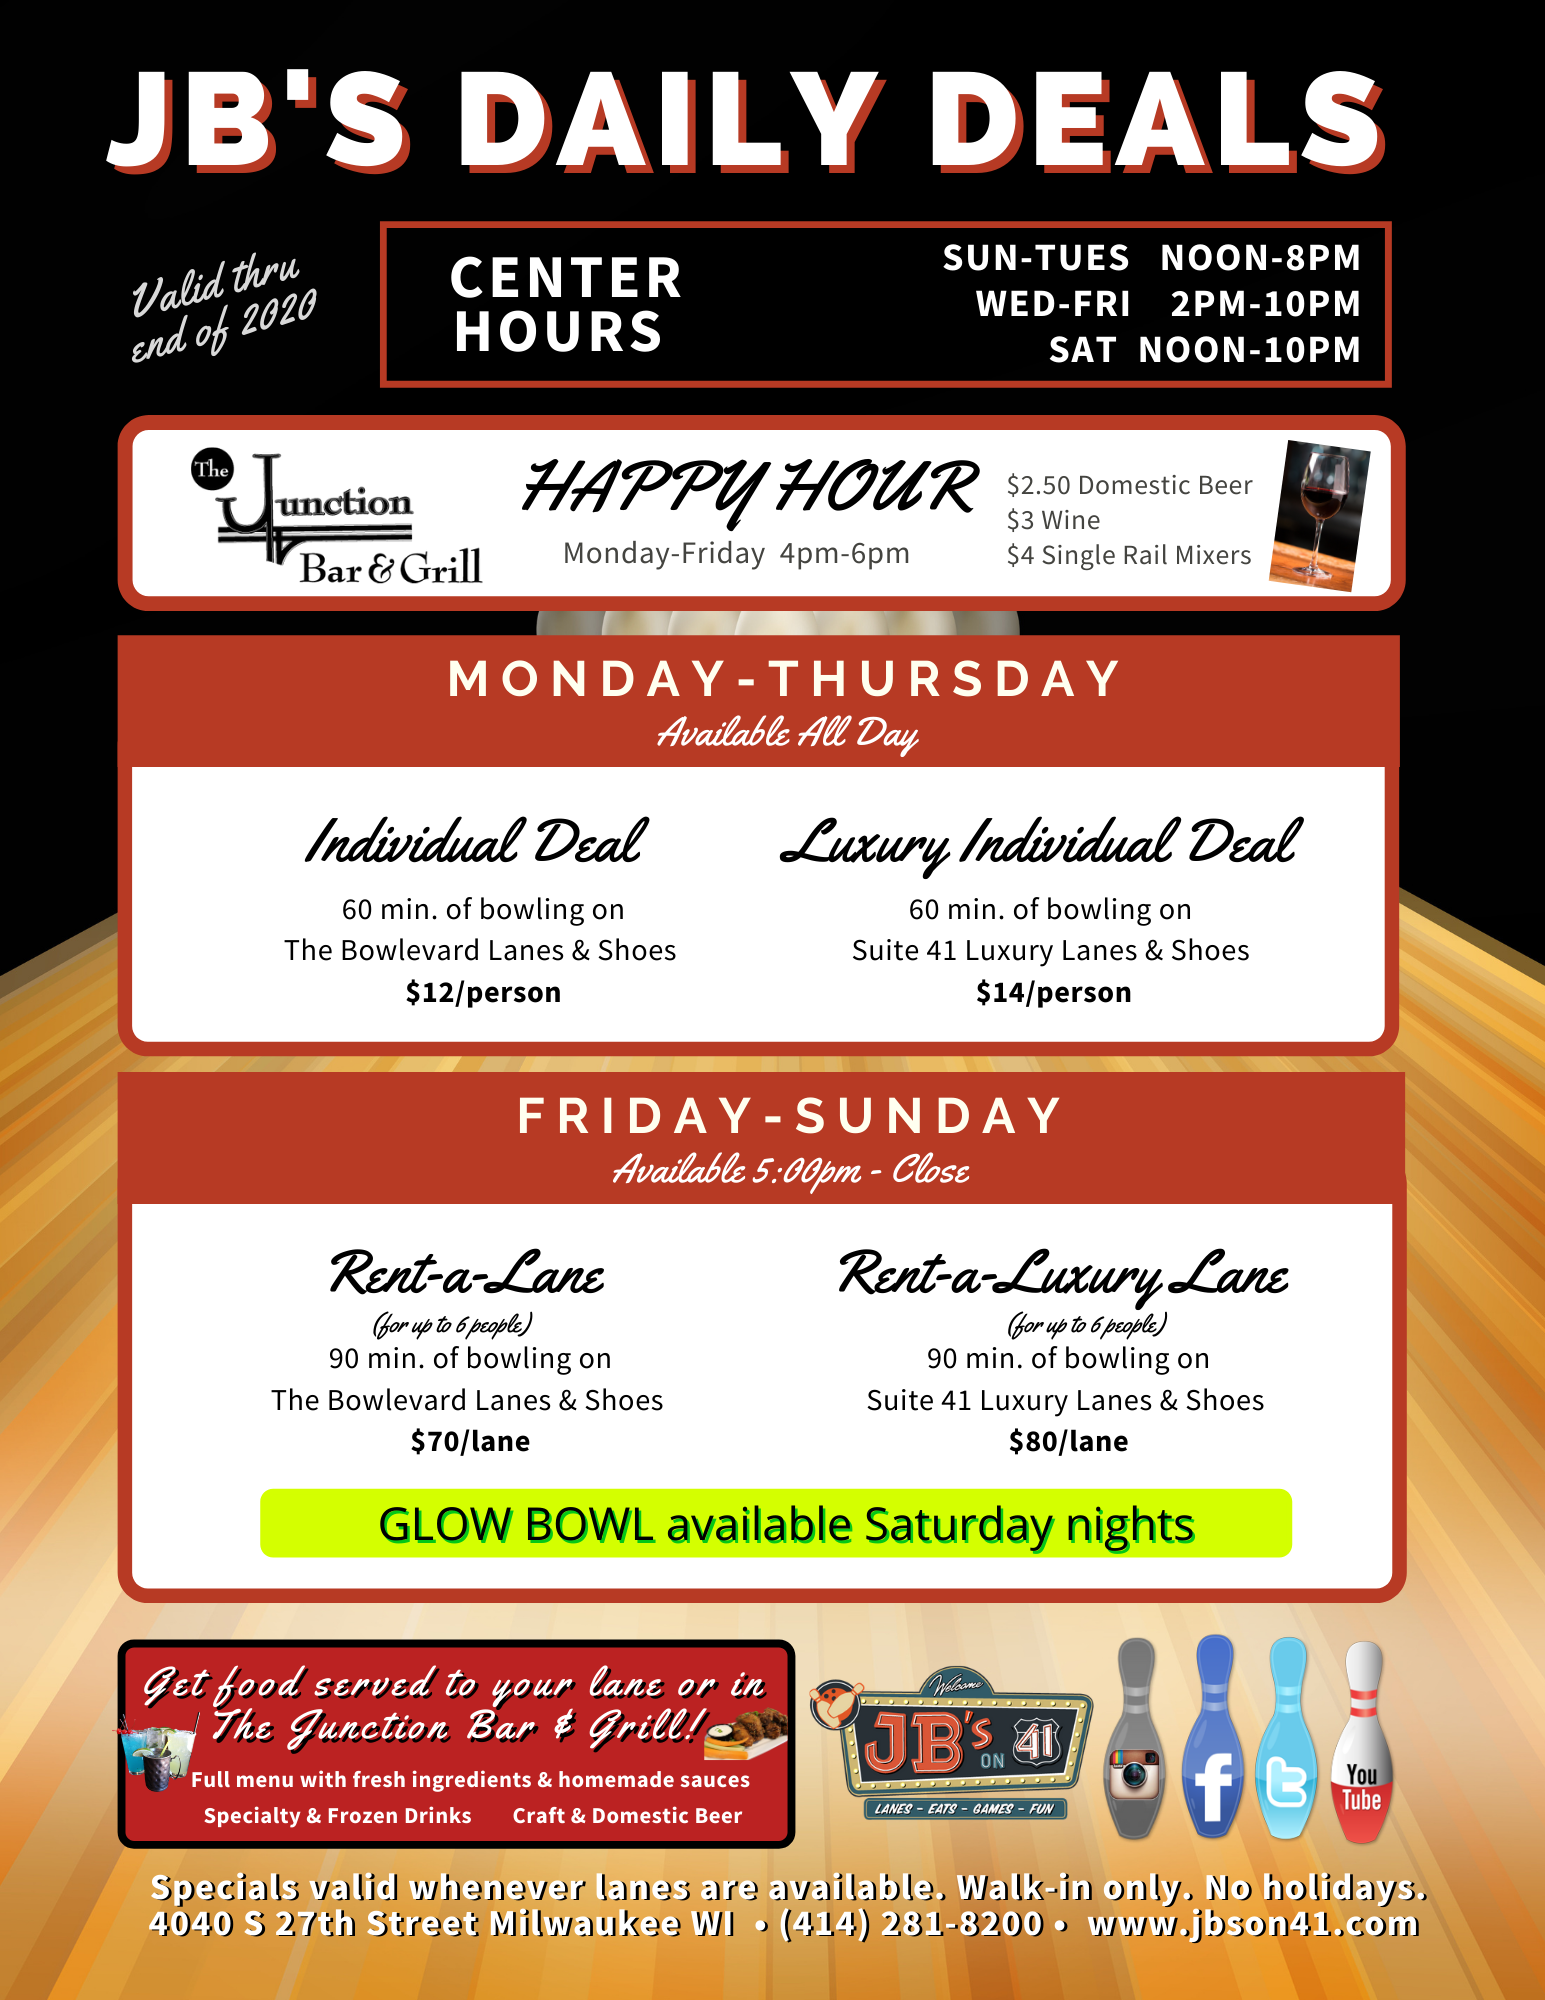 daily deals at jb's on 41 | november 2020 | open bowling deals and specials | walk-in for affordable family fun | JB's on 41 | Milwaukee, WI